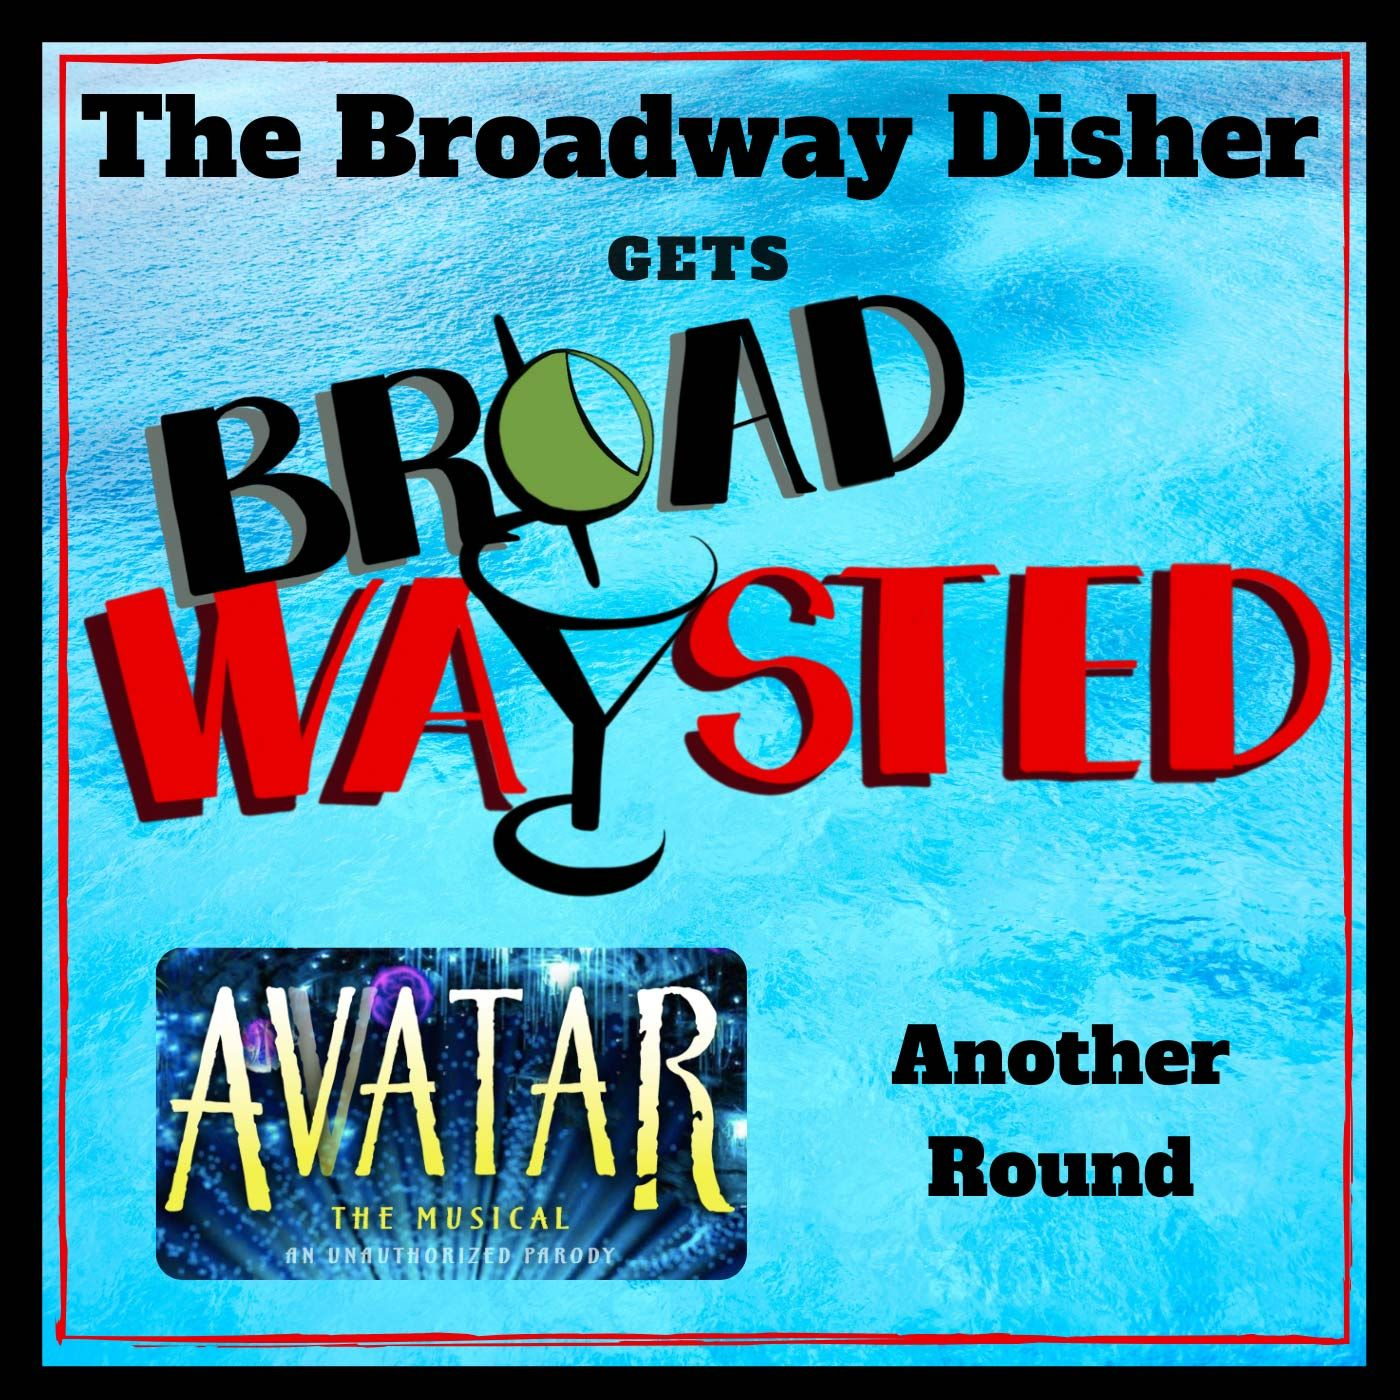 BONUS - The Broadway Disher gets Broadwaysted!